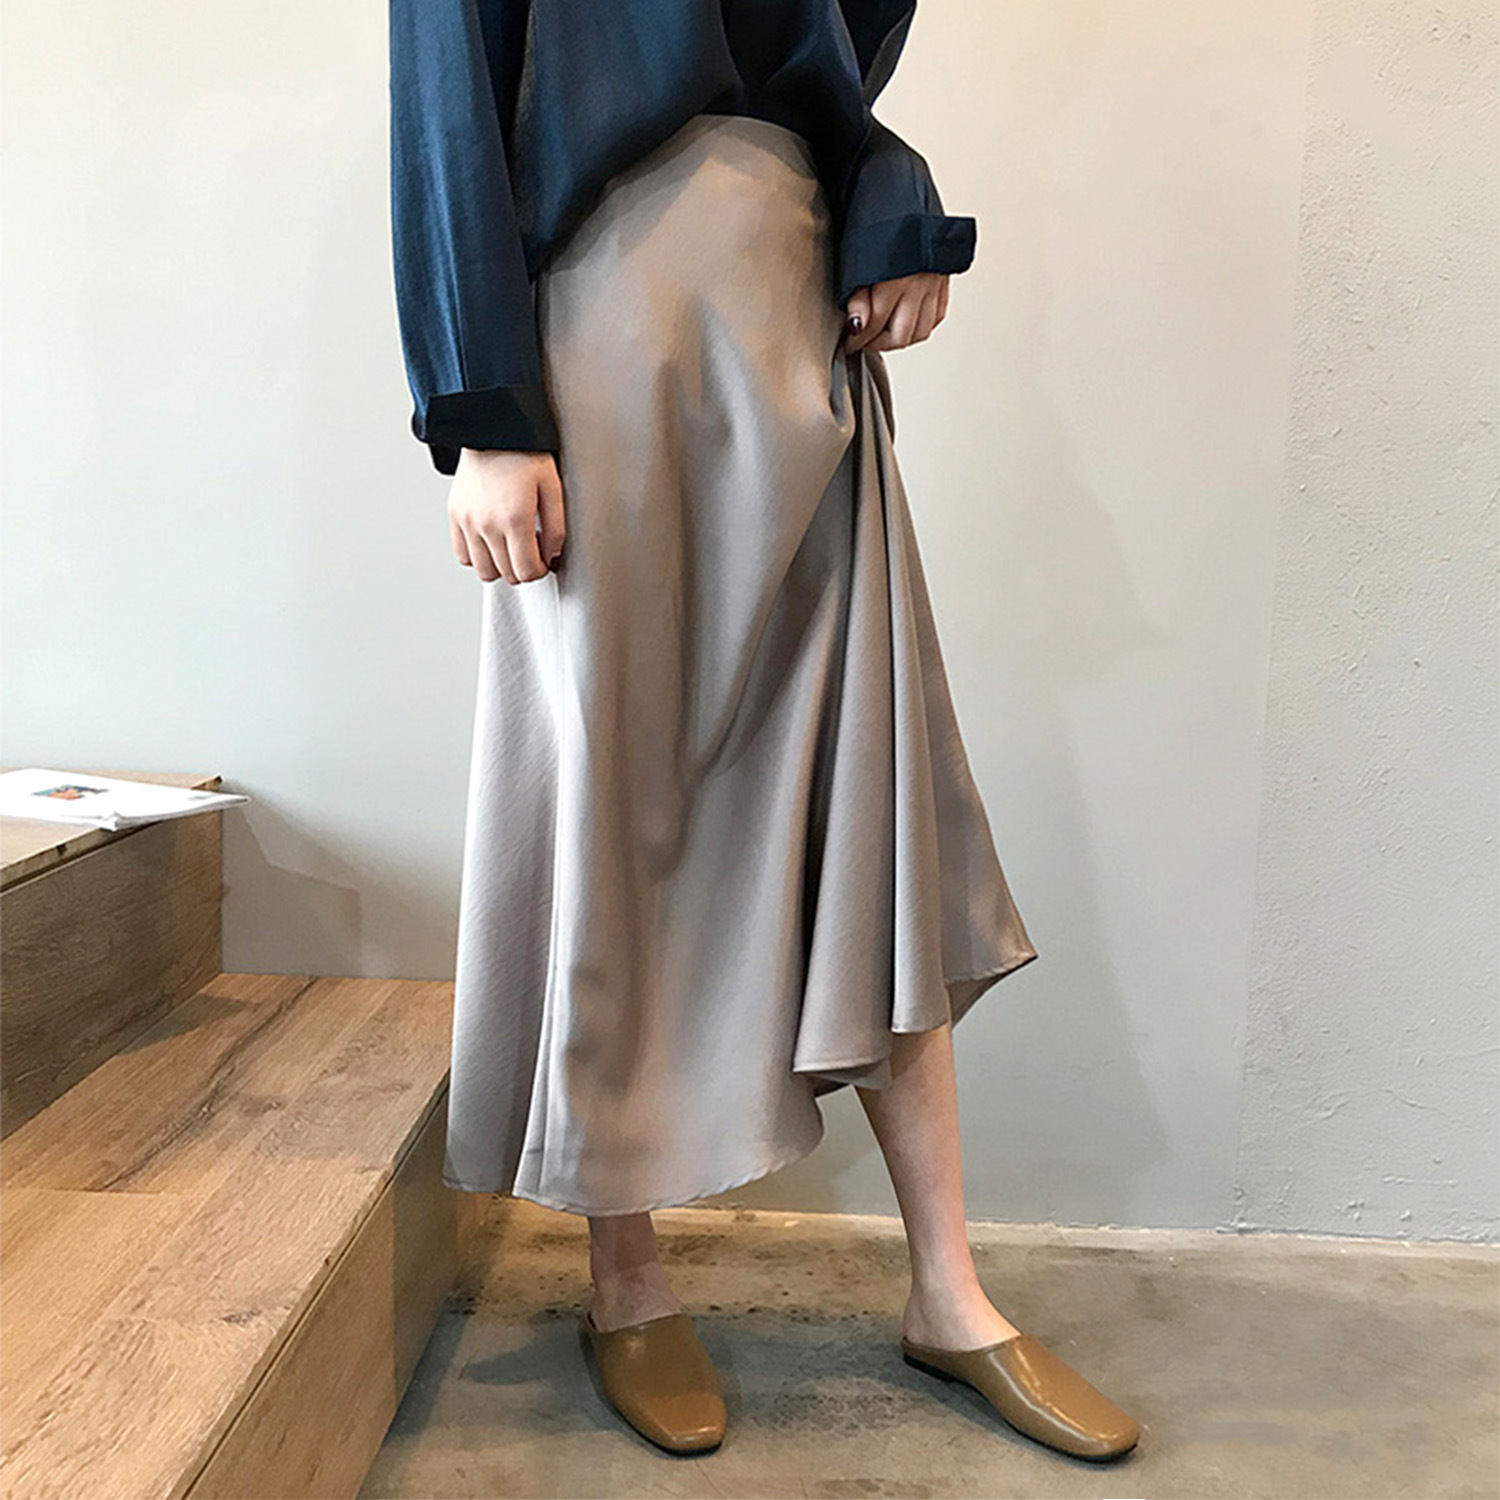 2019 High Waist Elegant Women Summer A-Line Long Skirt Chic Women Vintage Satin Skirt Women Faldas Jupe Femme Saia